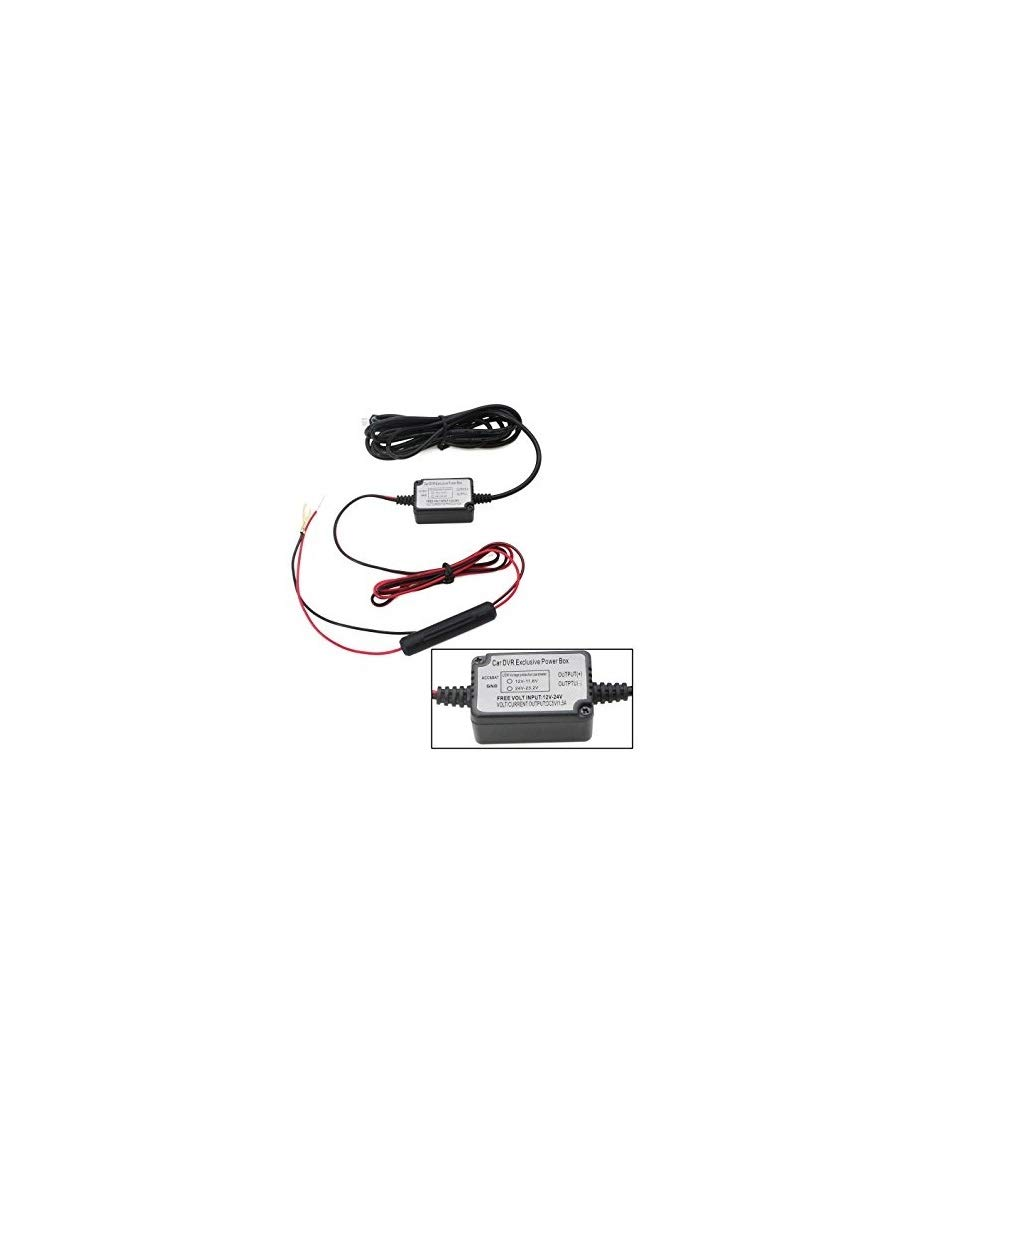 Spytec Mini Hardwire Fuse Kit Dash Cam Add A Circuitquot Micro2 Blade Size Circuit Holders Usb Keeps 12v Outlet Free Cell Phones Accessories